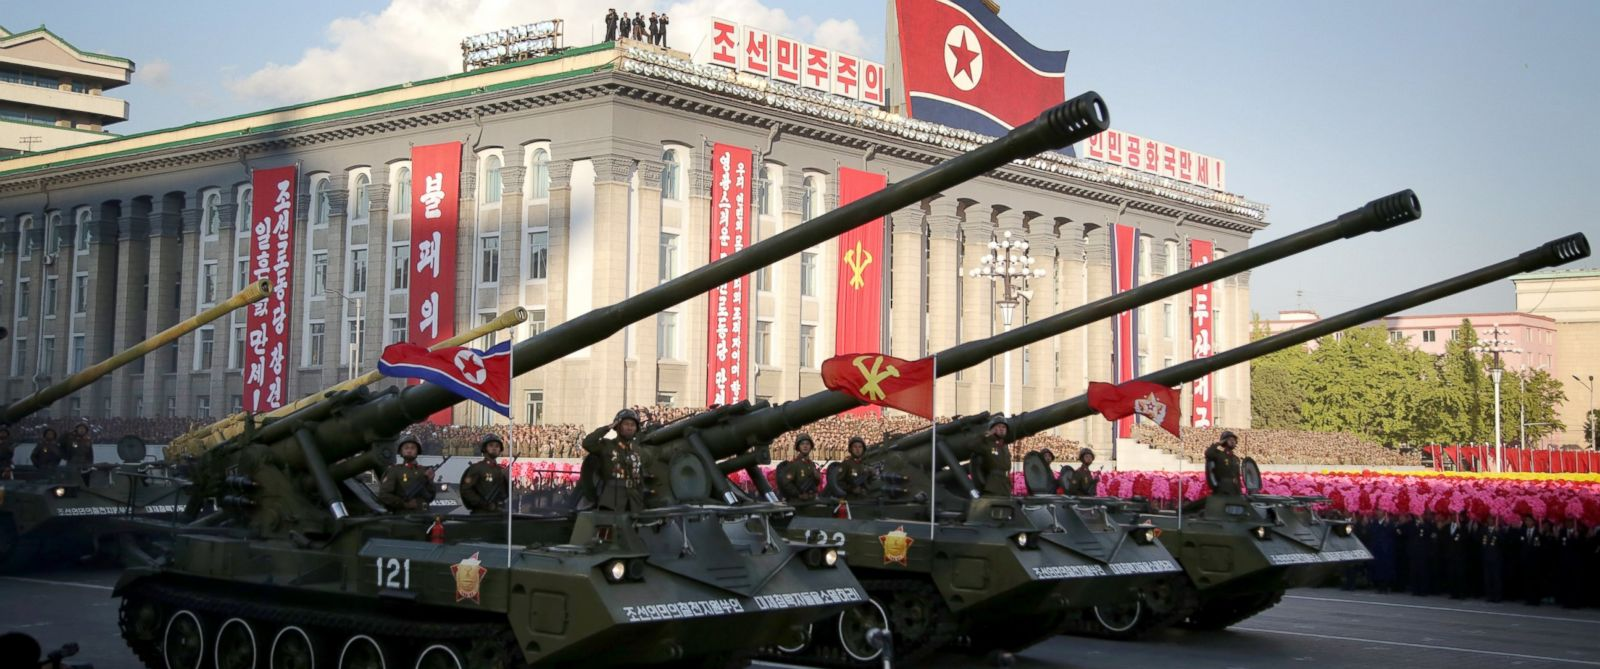 PHOTO: In this Saturday, Oct. 10, 2015, photo, missiles and rockets are paraded in Pyongyang, North Korea during the 70th anniversary celebrations of its ruling partys creation.